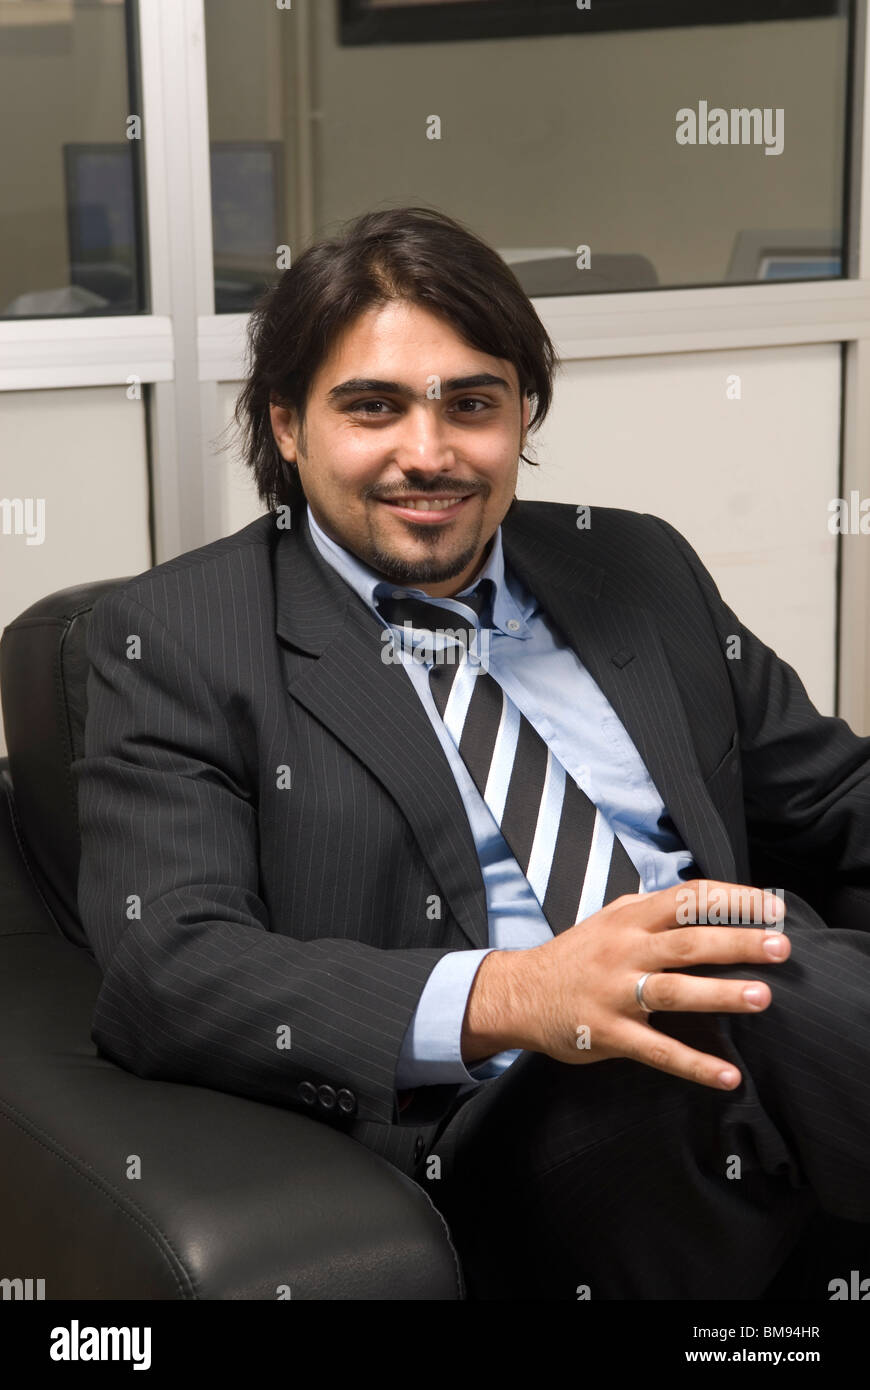 Smiling businessman sat inside office smiling Beirut Lebanon Middle East - Stock Image